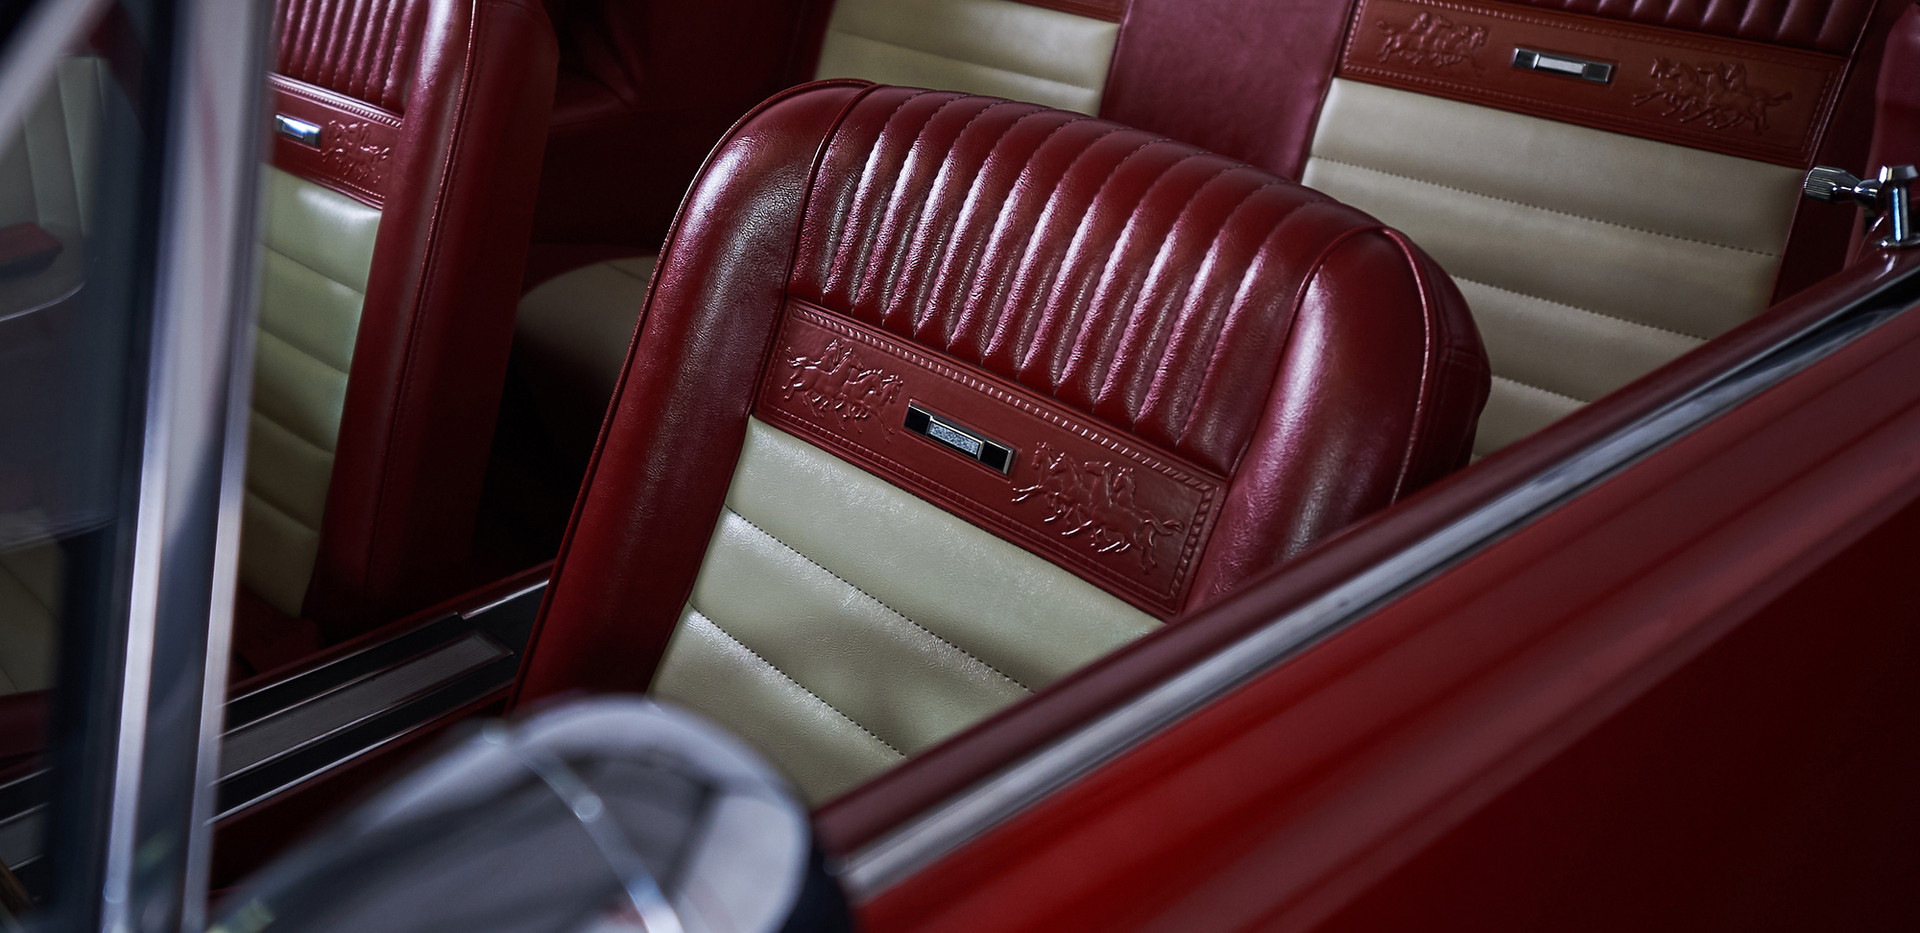 MUSTANG PONY ROUGE - interieur sieges.jp